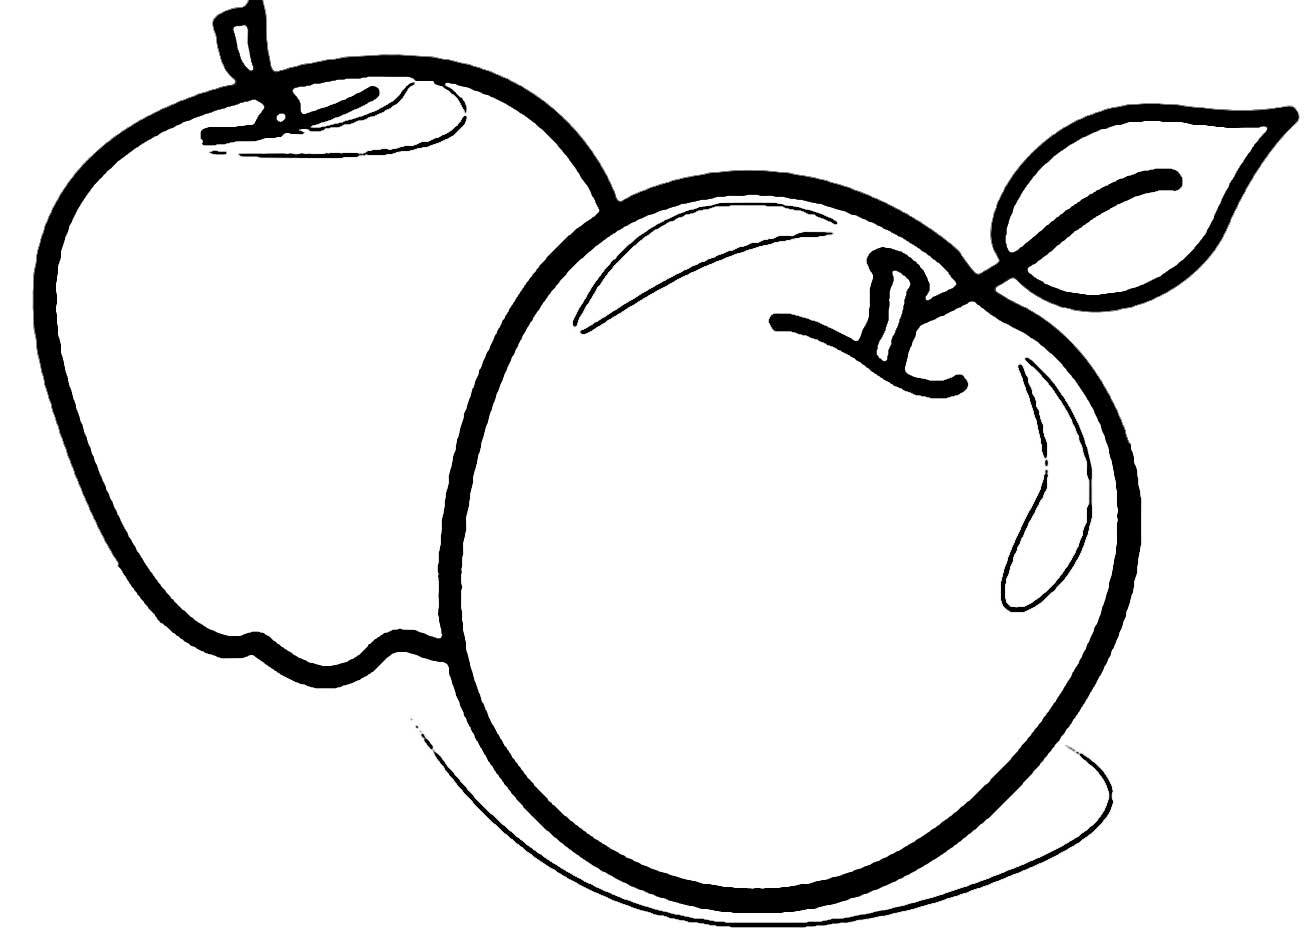 coloring apple page apple coloring pages fotolipcom rich image and wallpaper page apple coloring